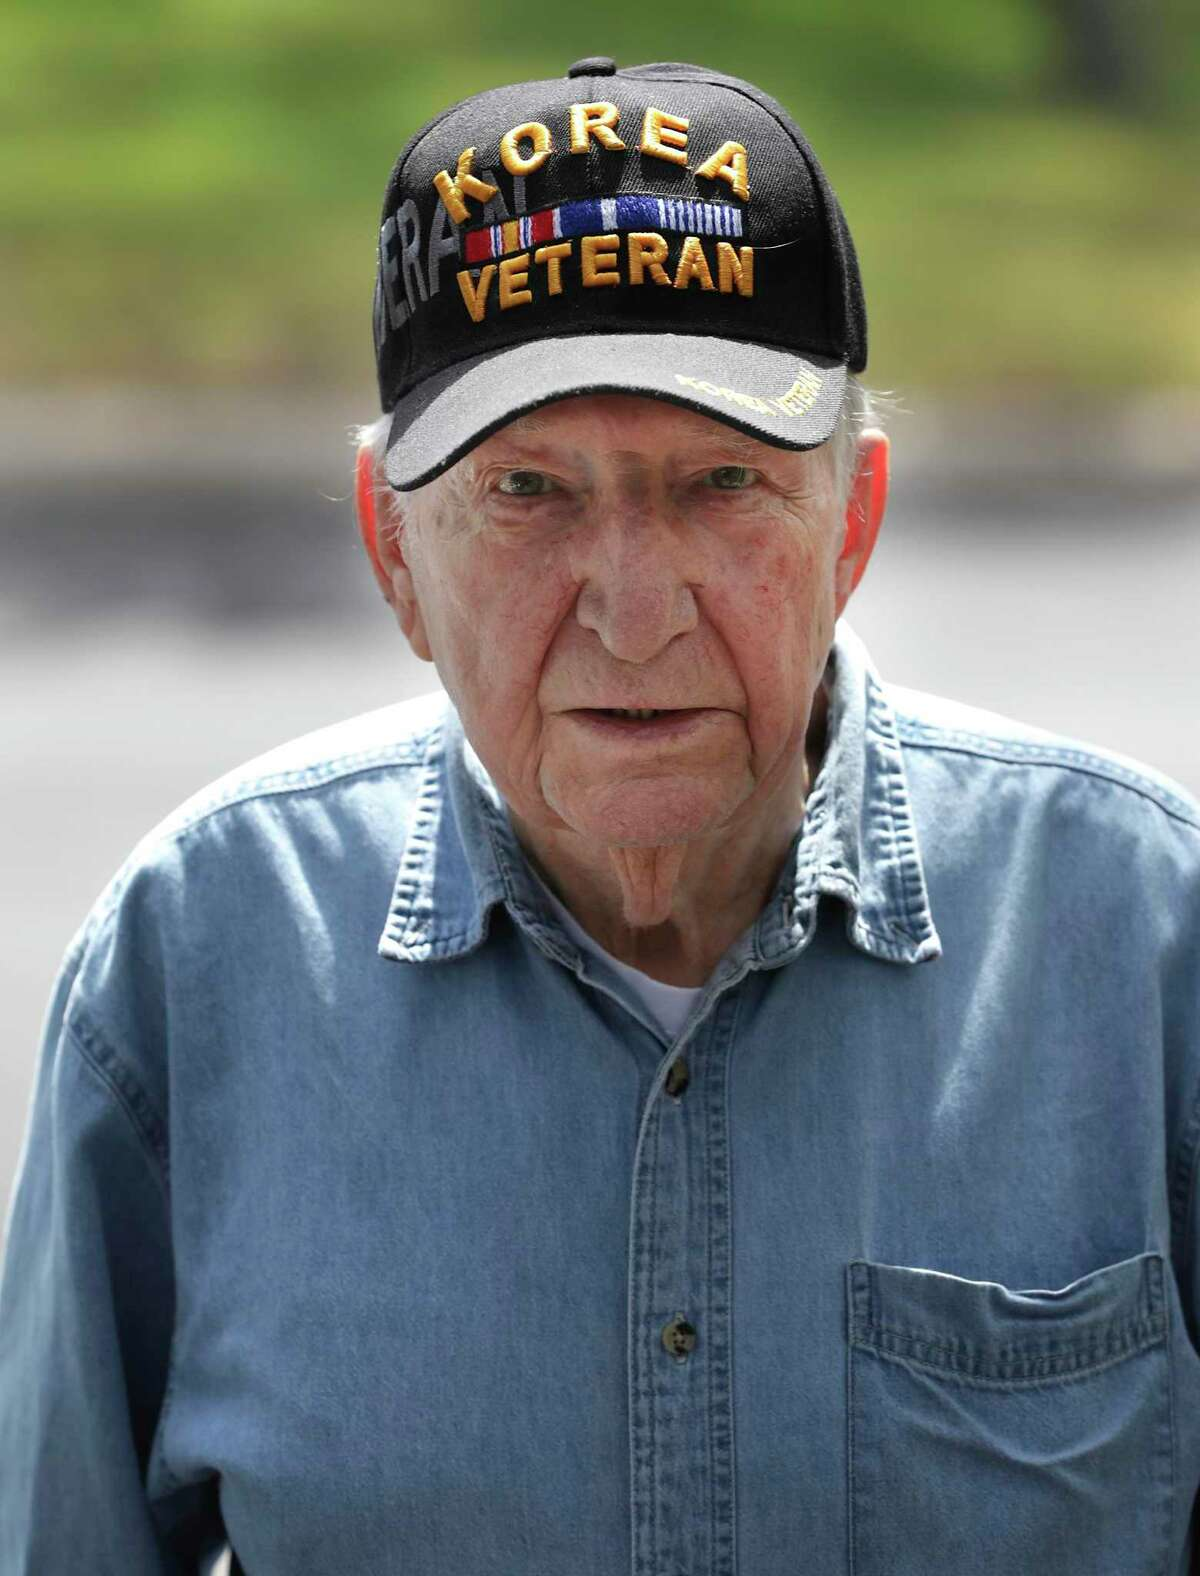 Charles Shuemate, 87, fought during the early part of the Korean War, which was halted 67 years ago today.